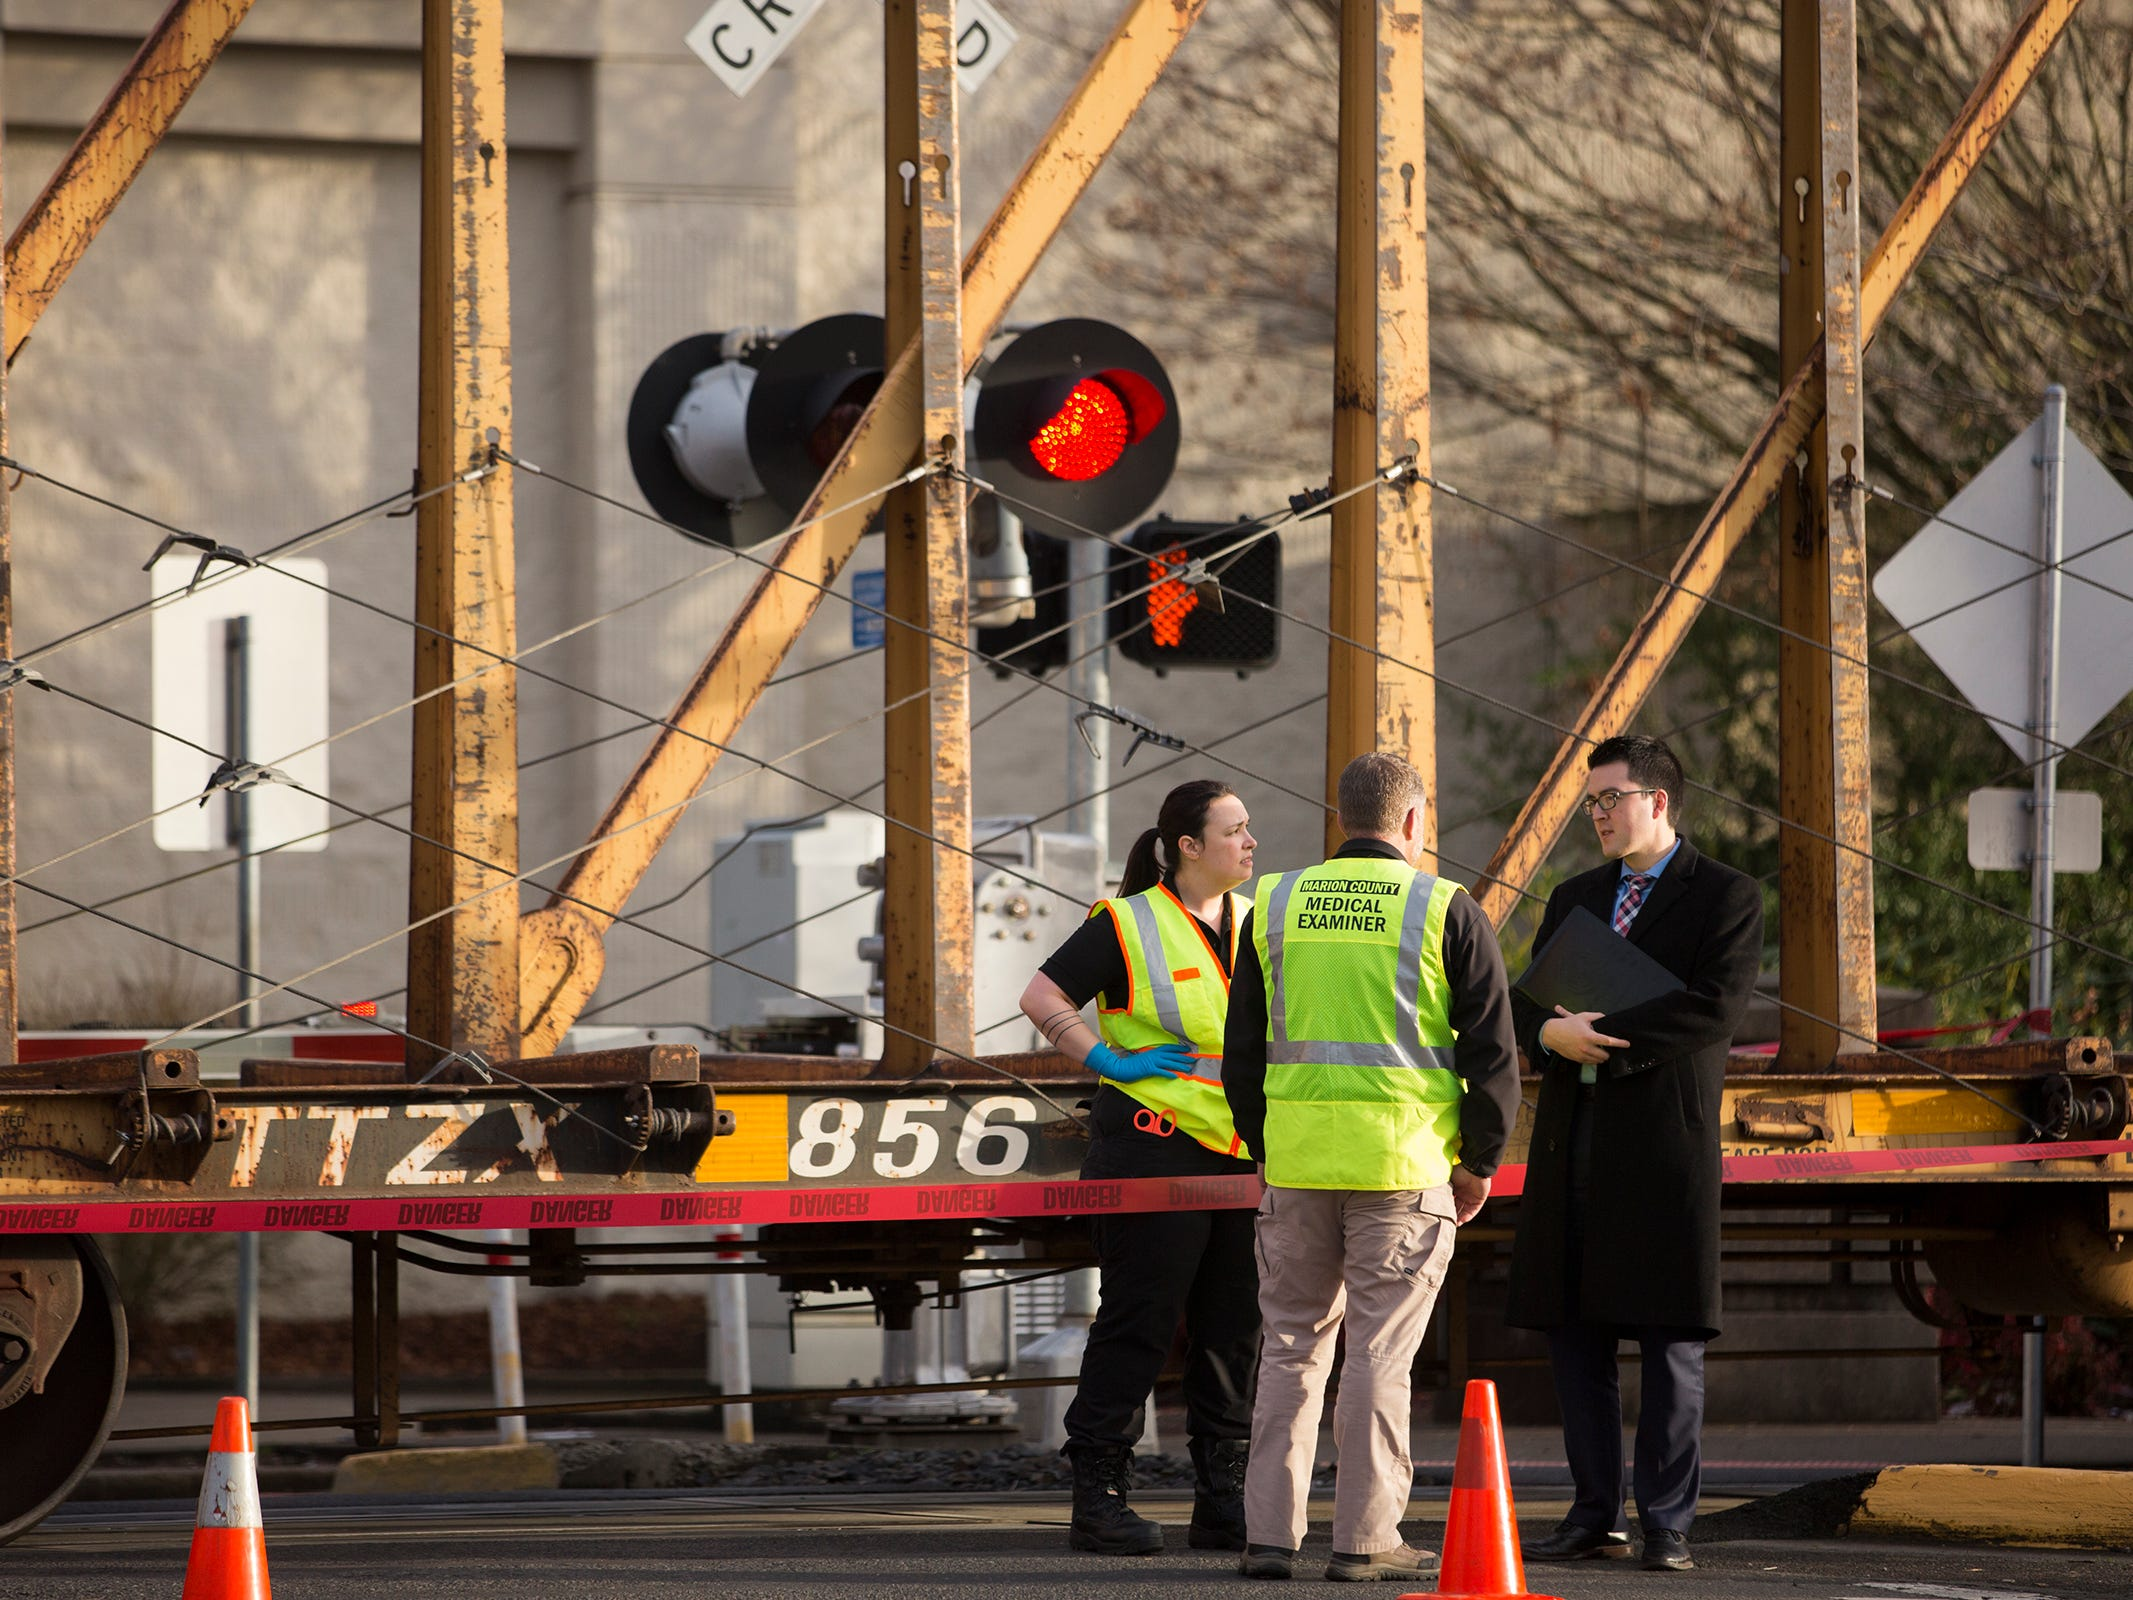 Officials investigate where a pedestrian was hit by a train at the intersection of Marion. St. NE and 12th St. on Thursday, Dec. 27, 2018.